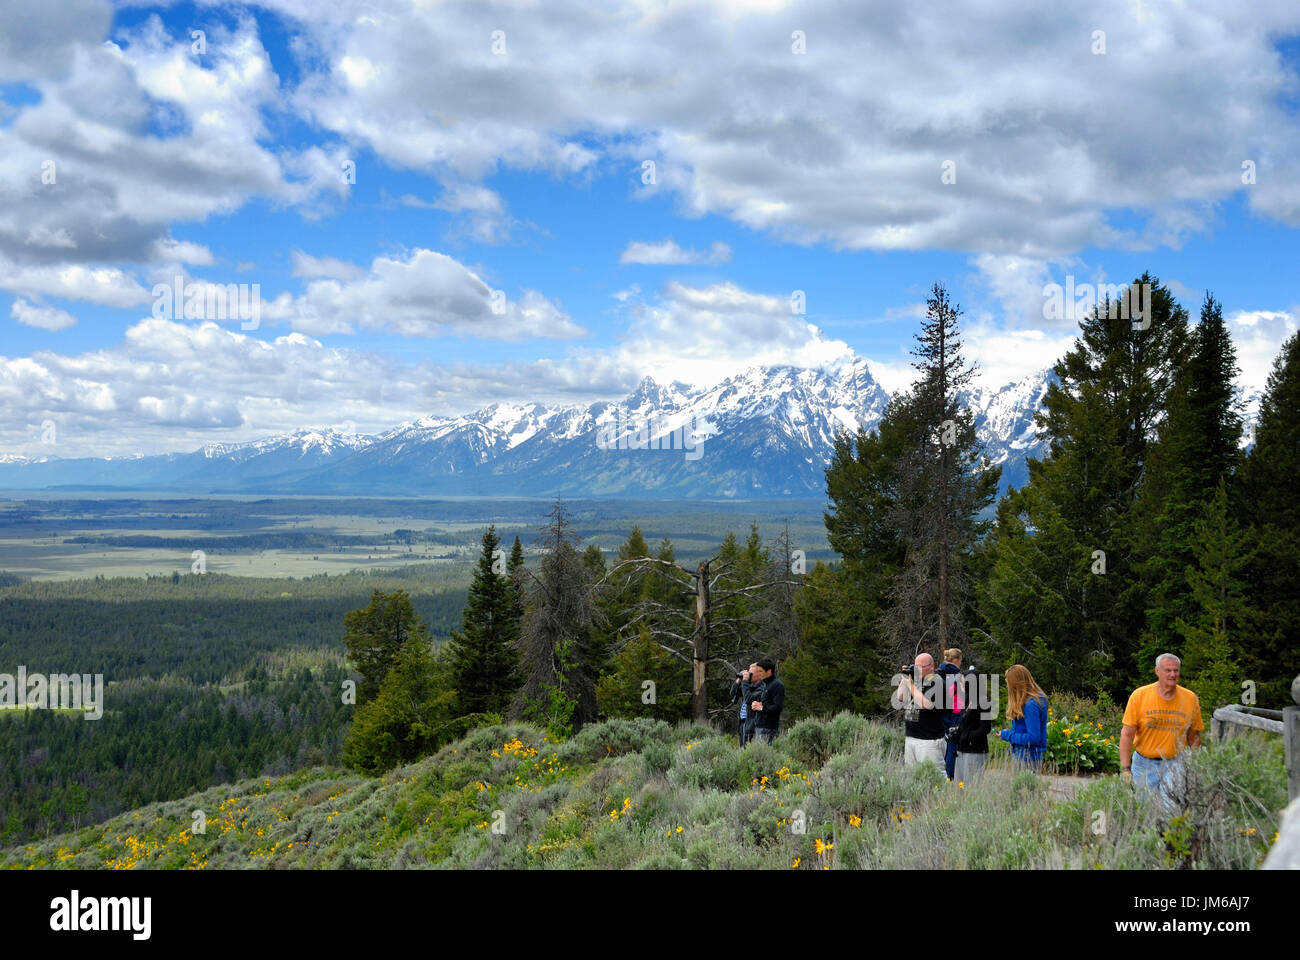 Valley view from Jackson Lake Overlook, Grand Tetons National Park, Wyoming, USA Stock Photo